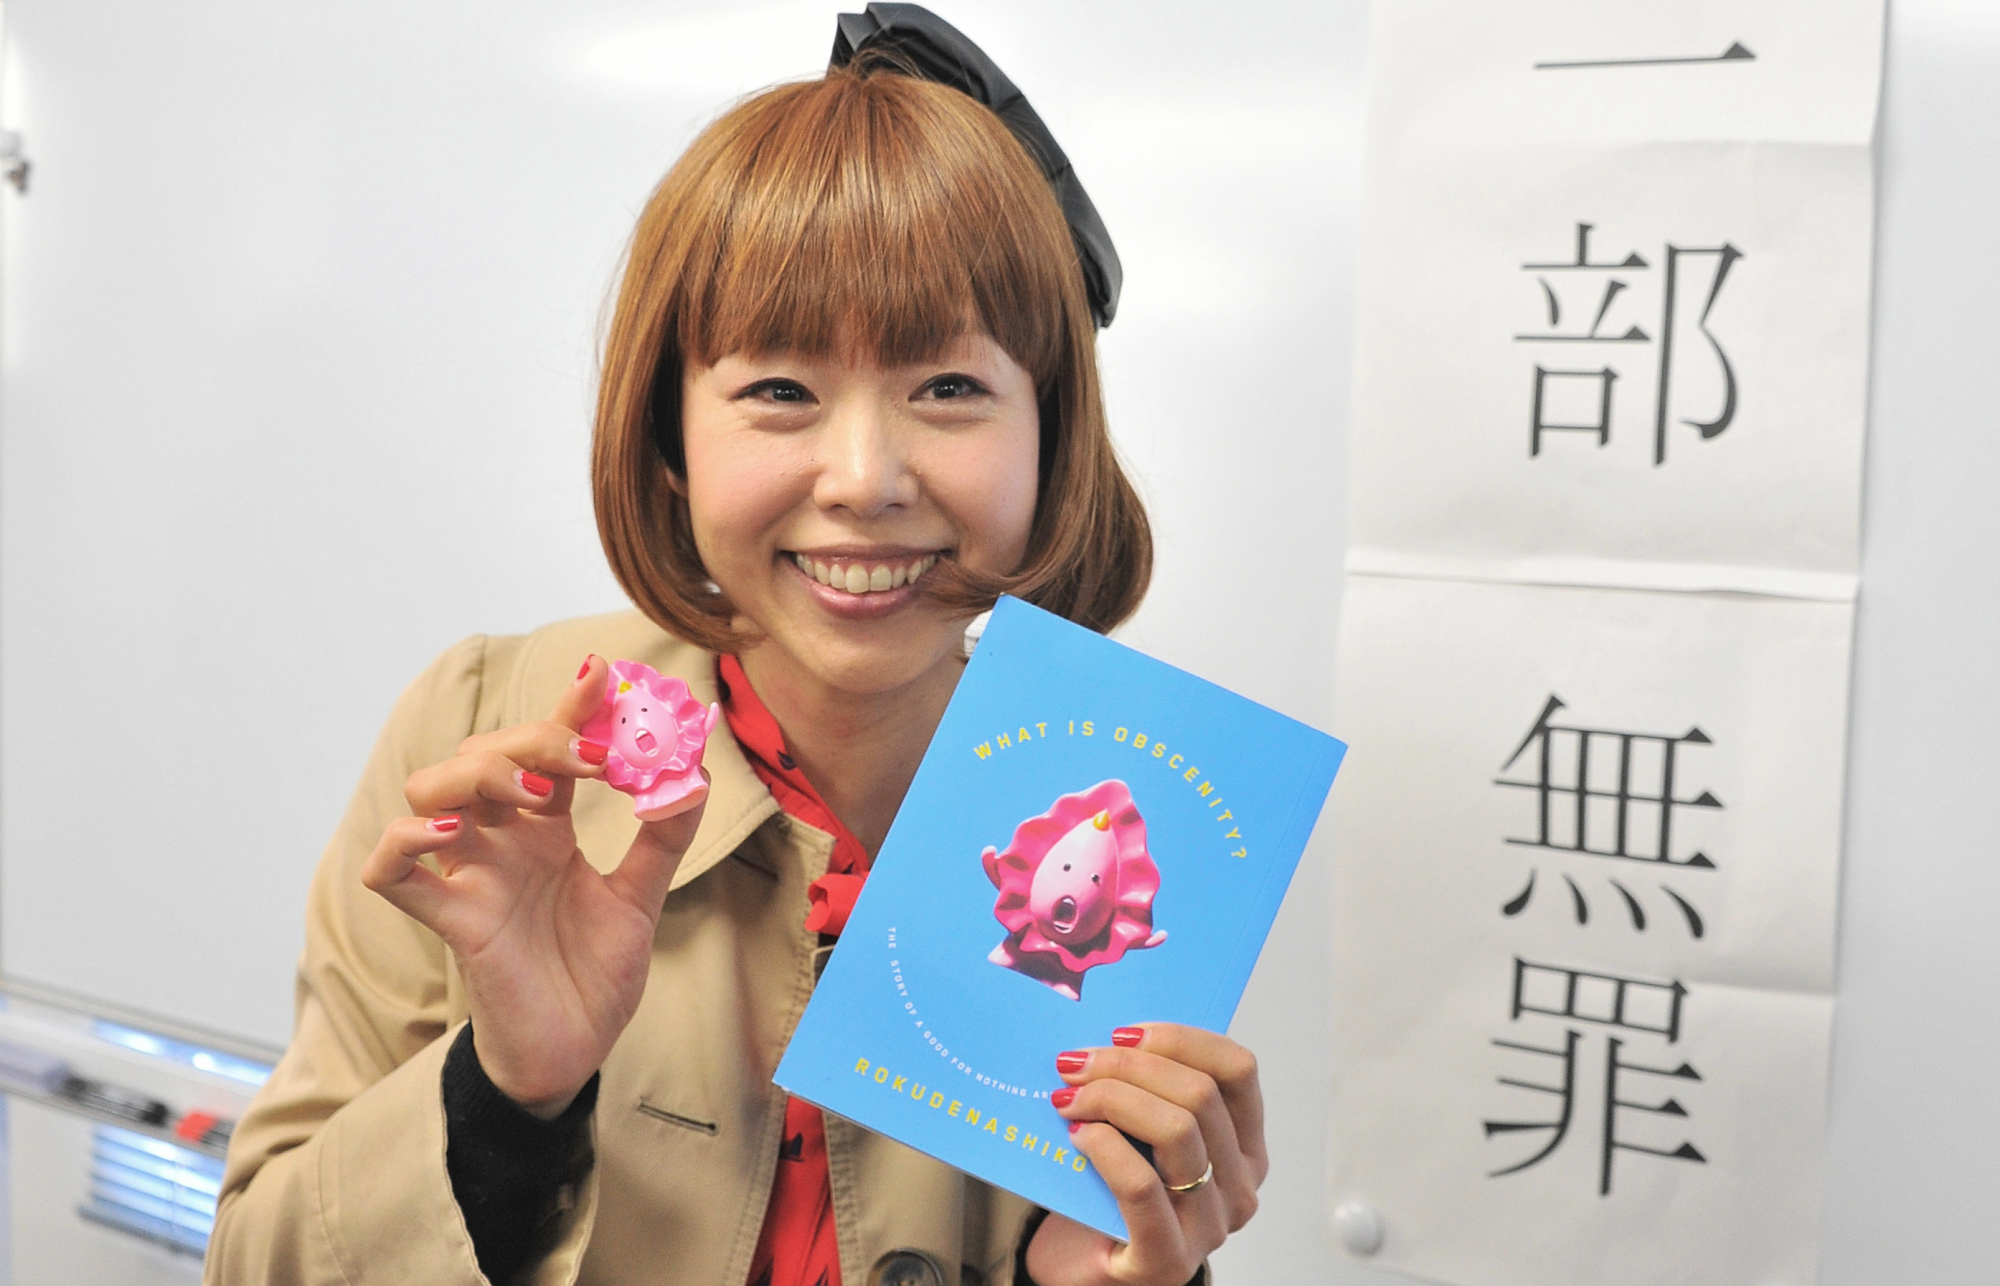 Megumi Igarashi with her artwork and the book she has written. Photo via Yoshiaki Miura.